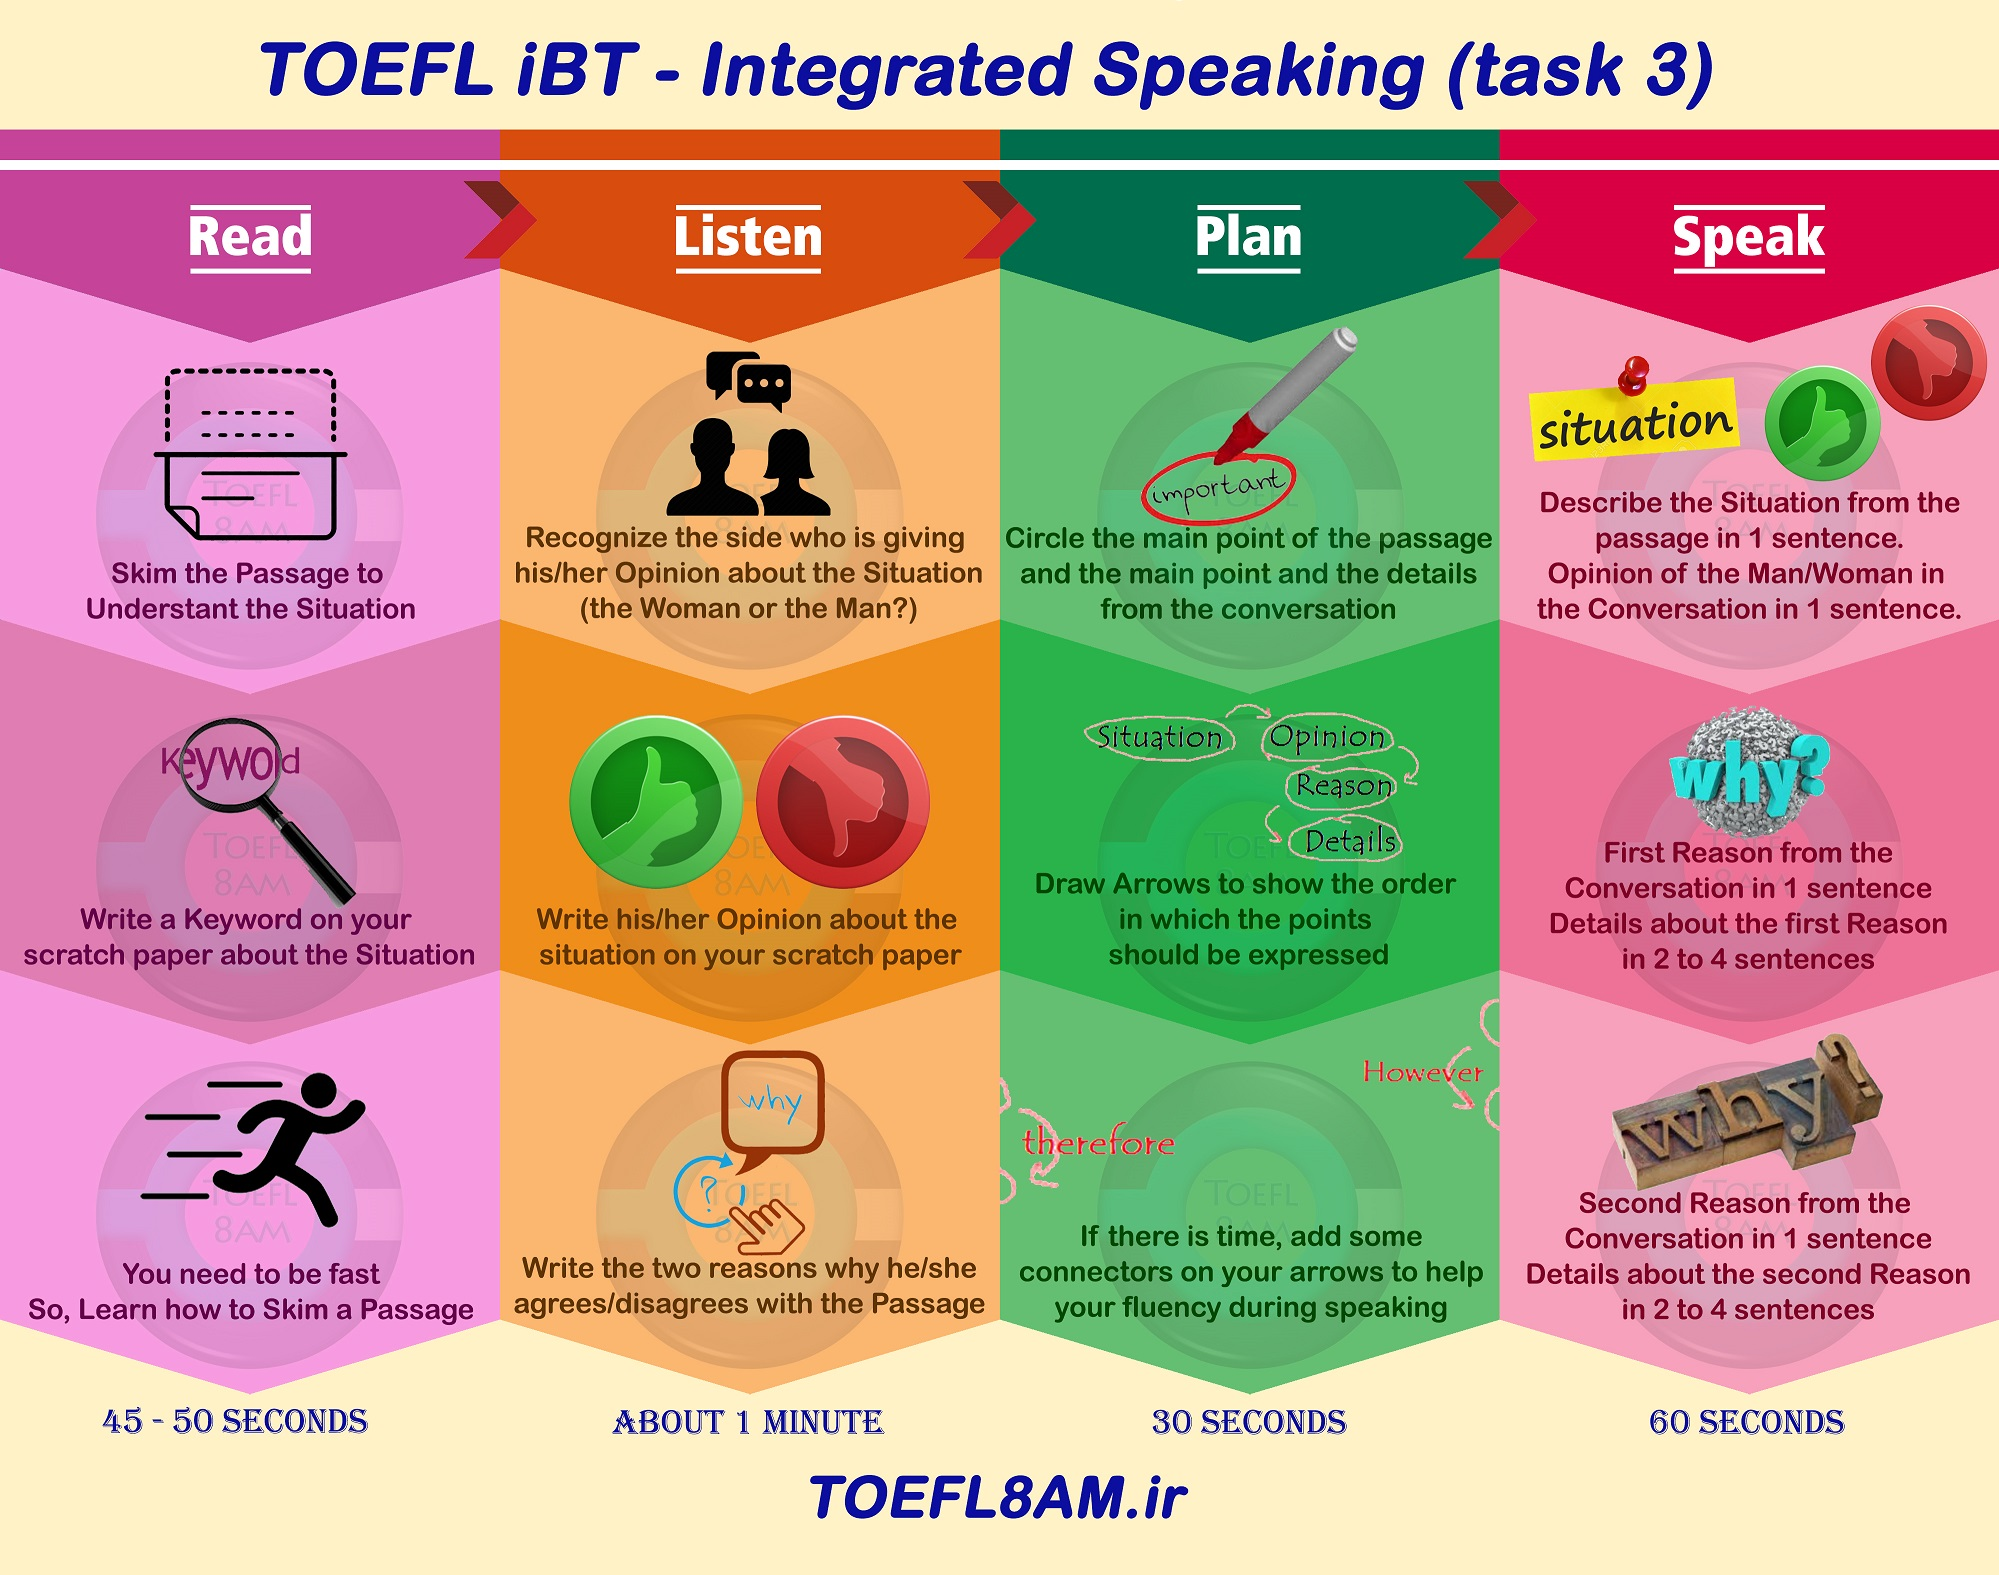 success in TOEFL iBT Speaking task 3